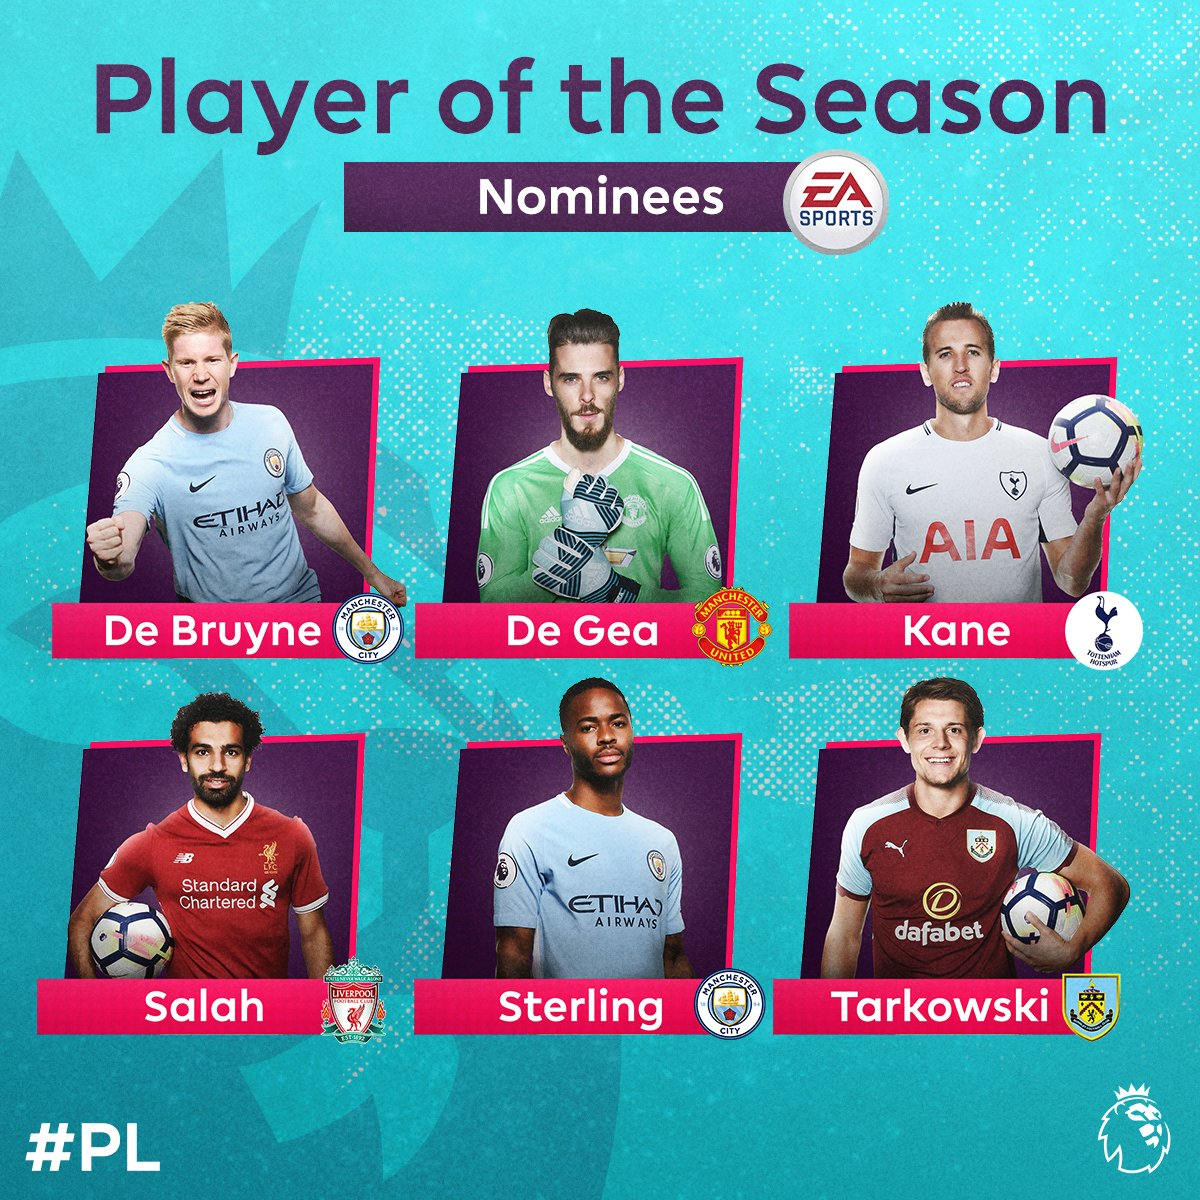 And the nominations for @EASPORTSFIFA Player of the Season are...  Vote: https://t.co/WJmEFqJqLf   #PLAwards